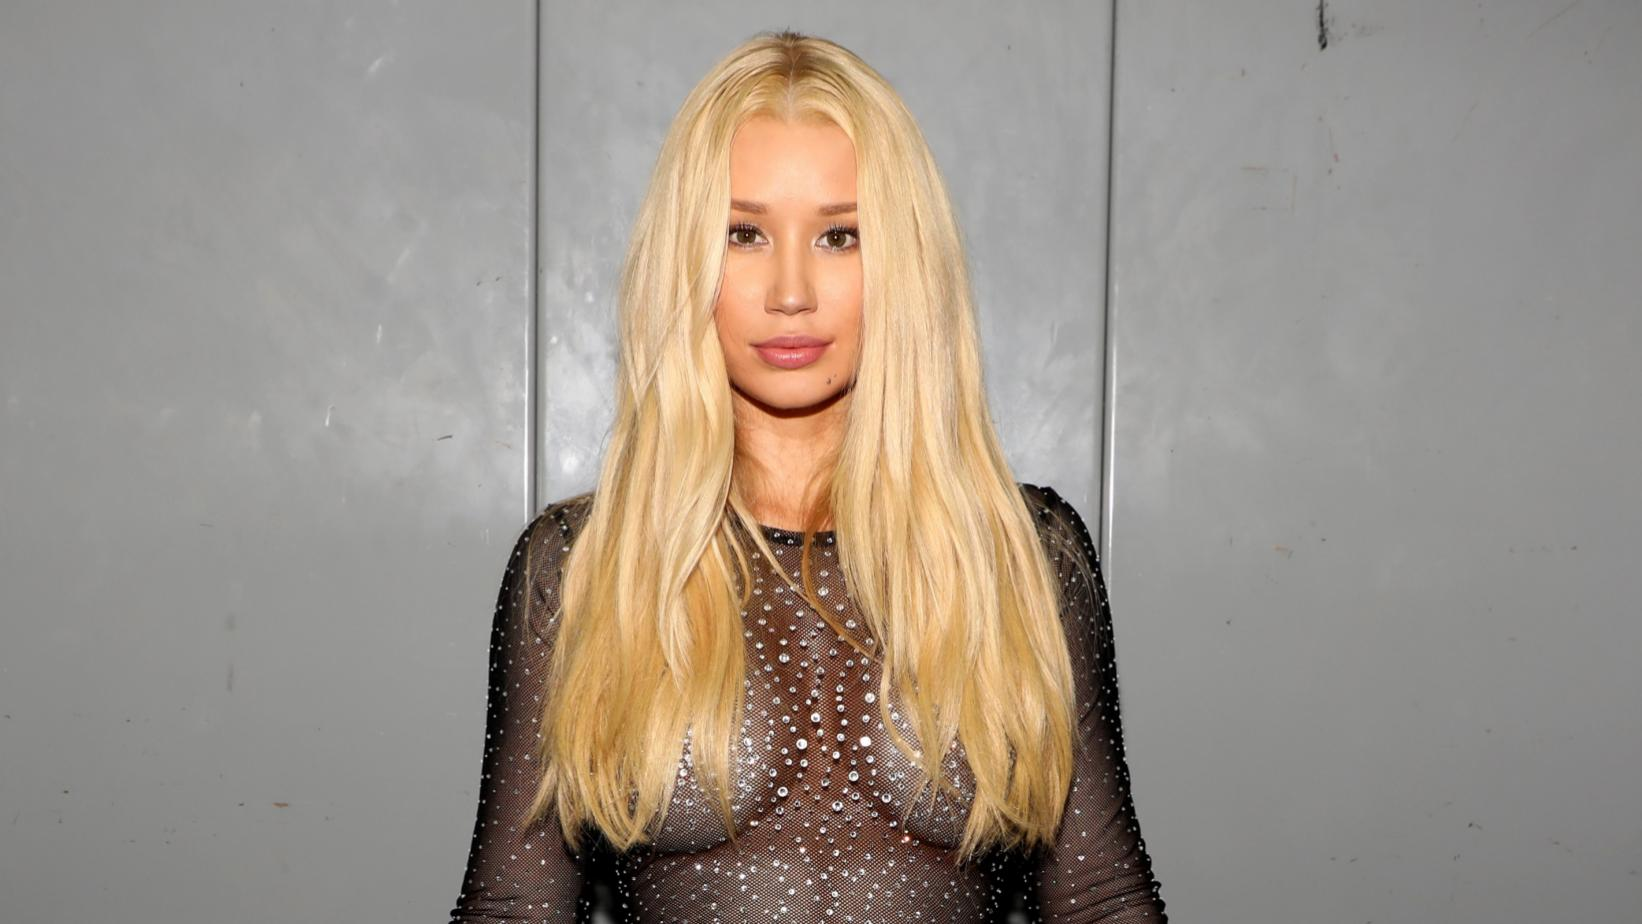 Iggy Azalea Shaves Her Hair In New TikTok Video And Fans Freak Out!